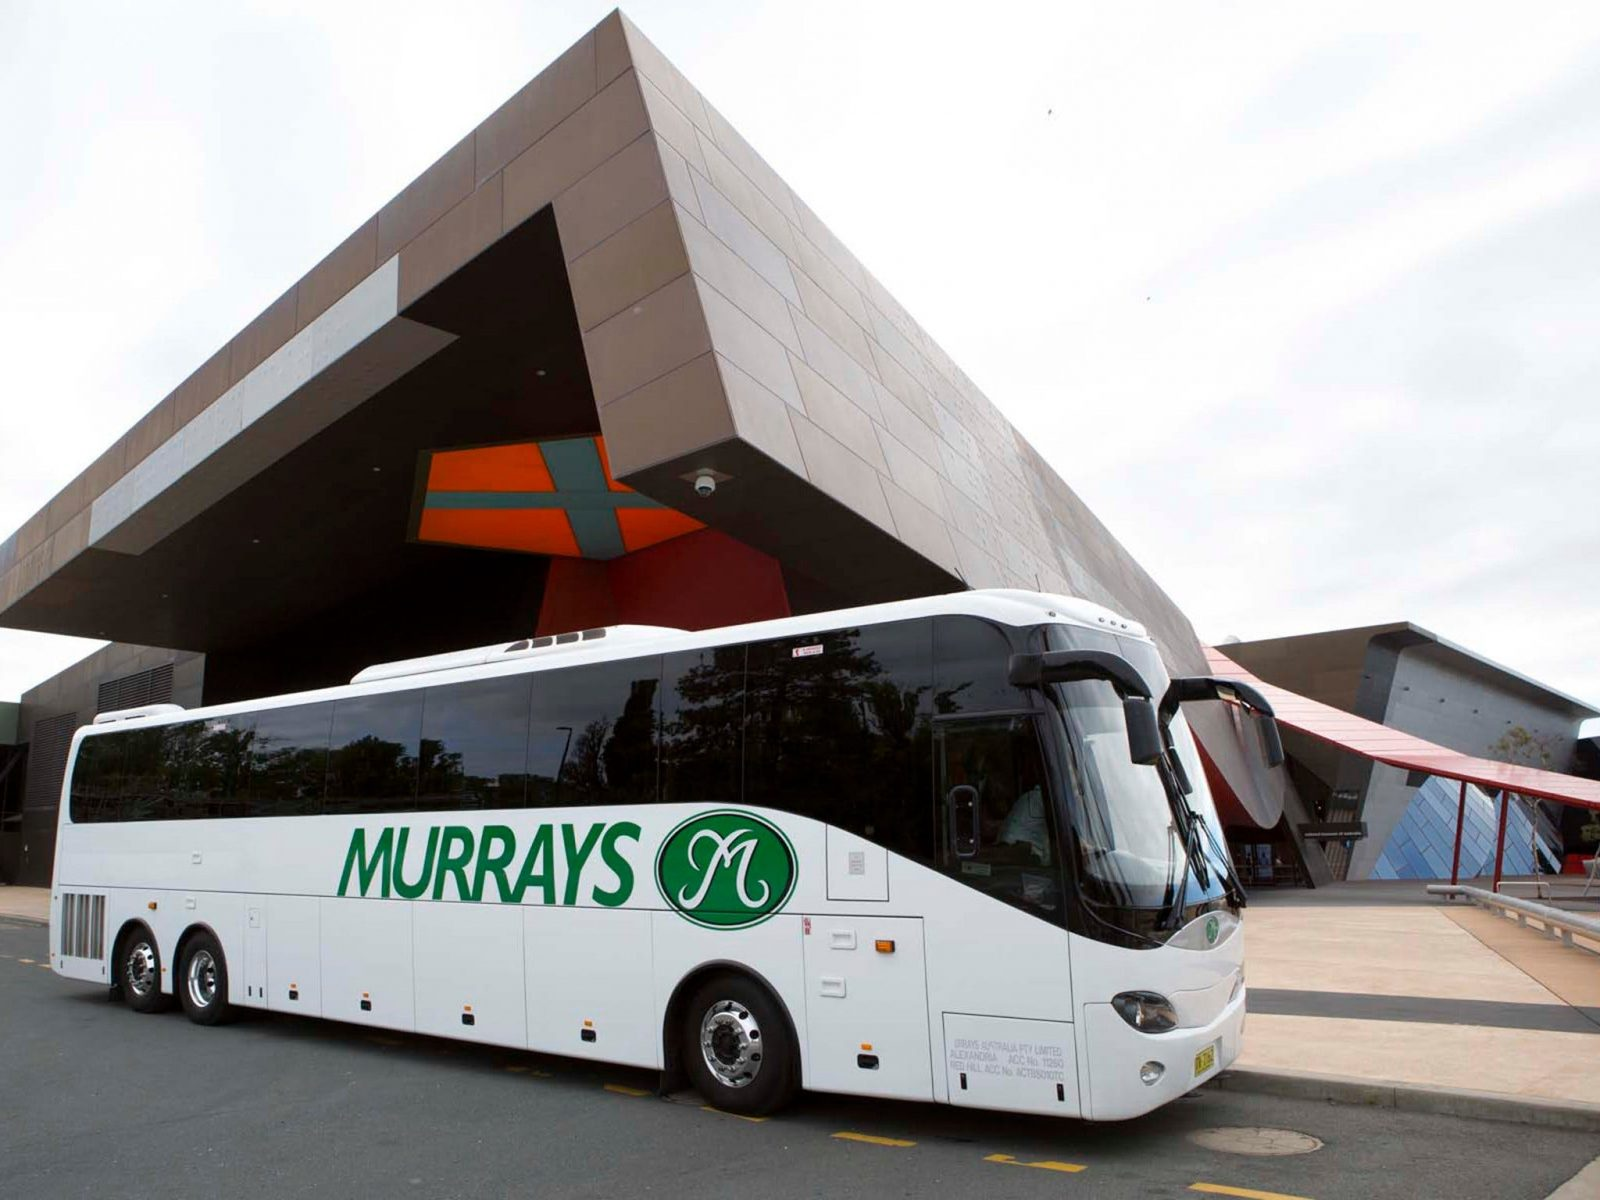 Murrays coach outside the National Museum of Australia